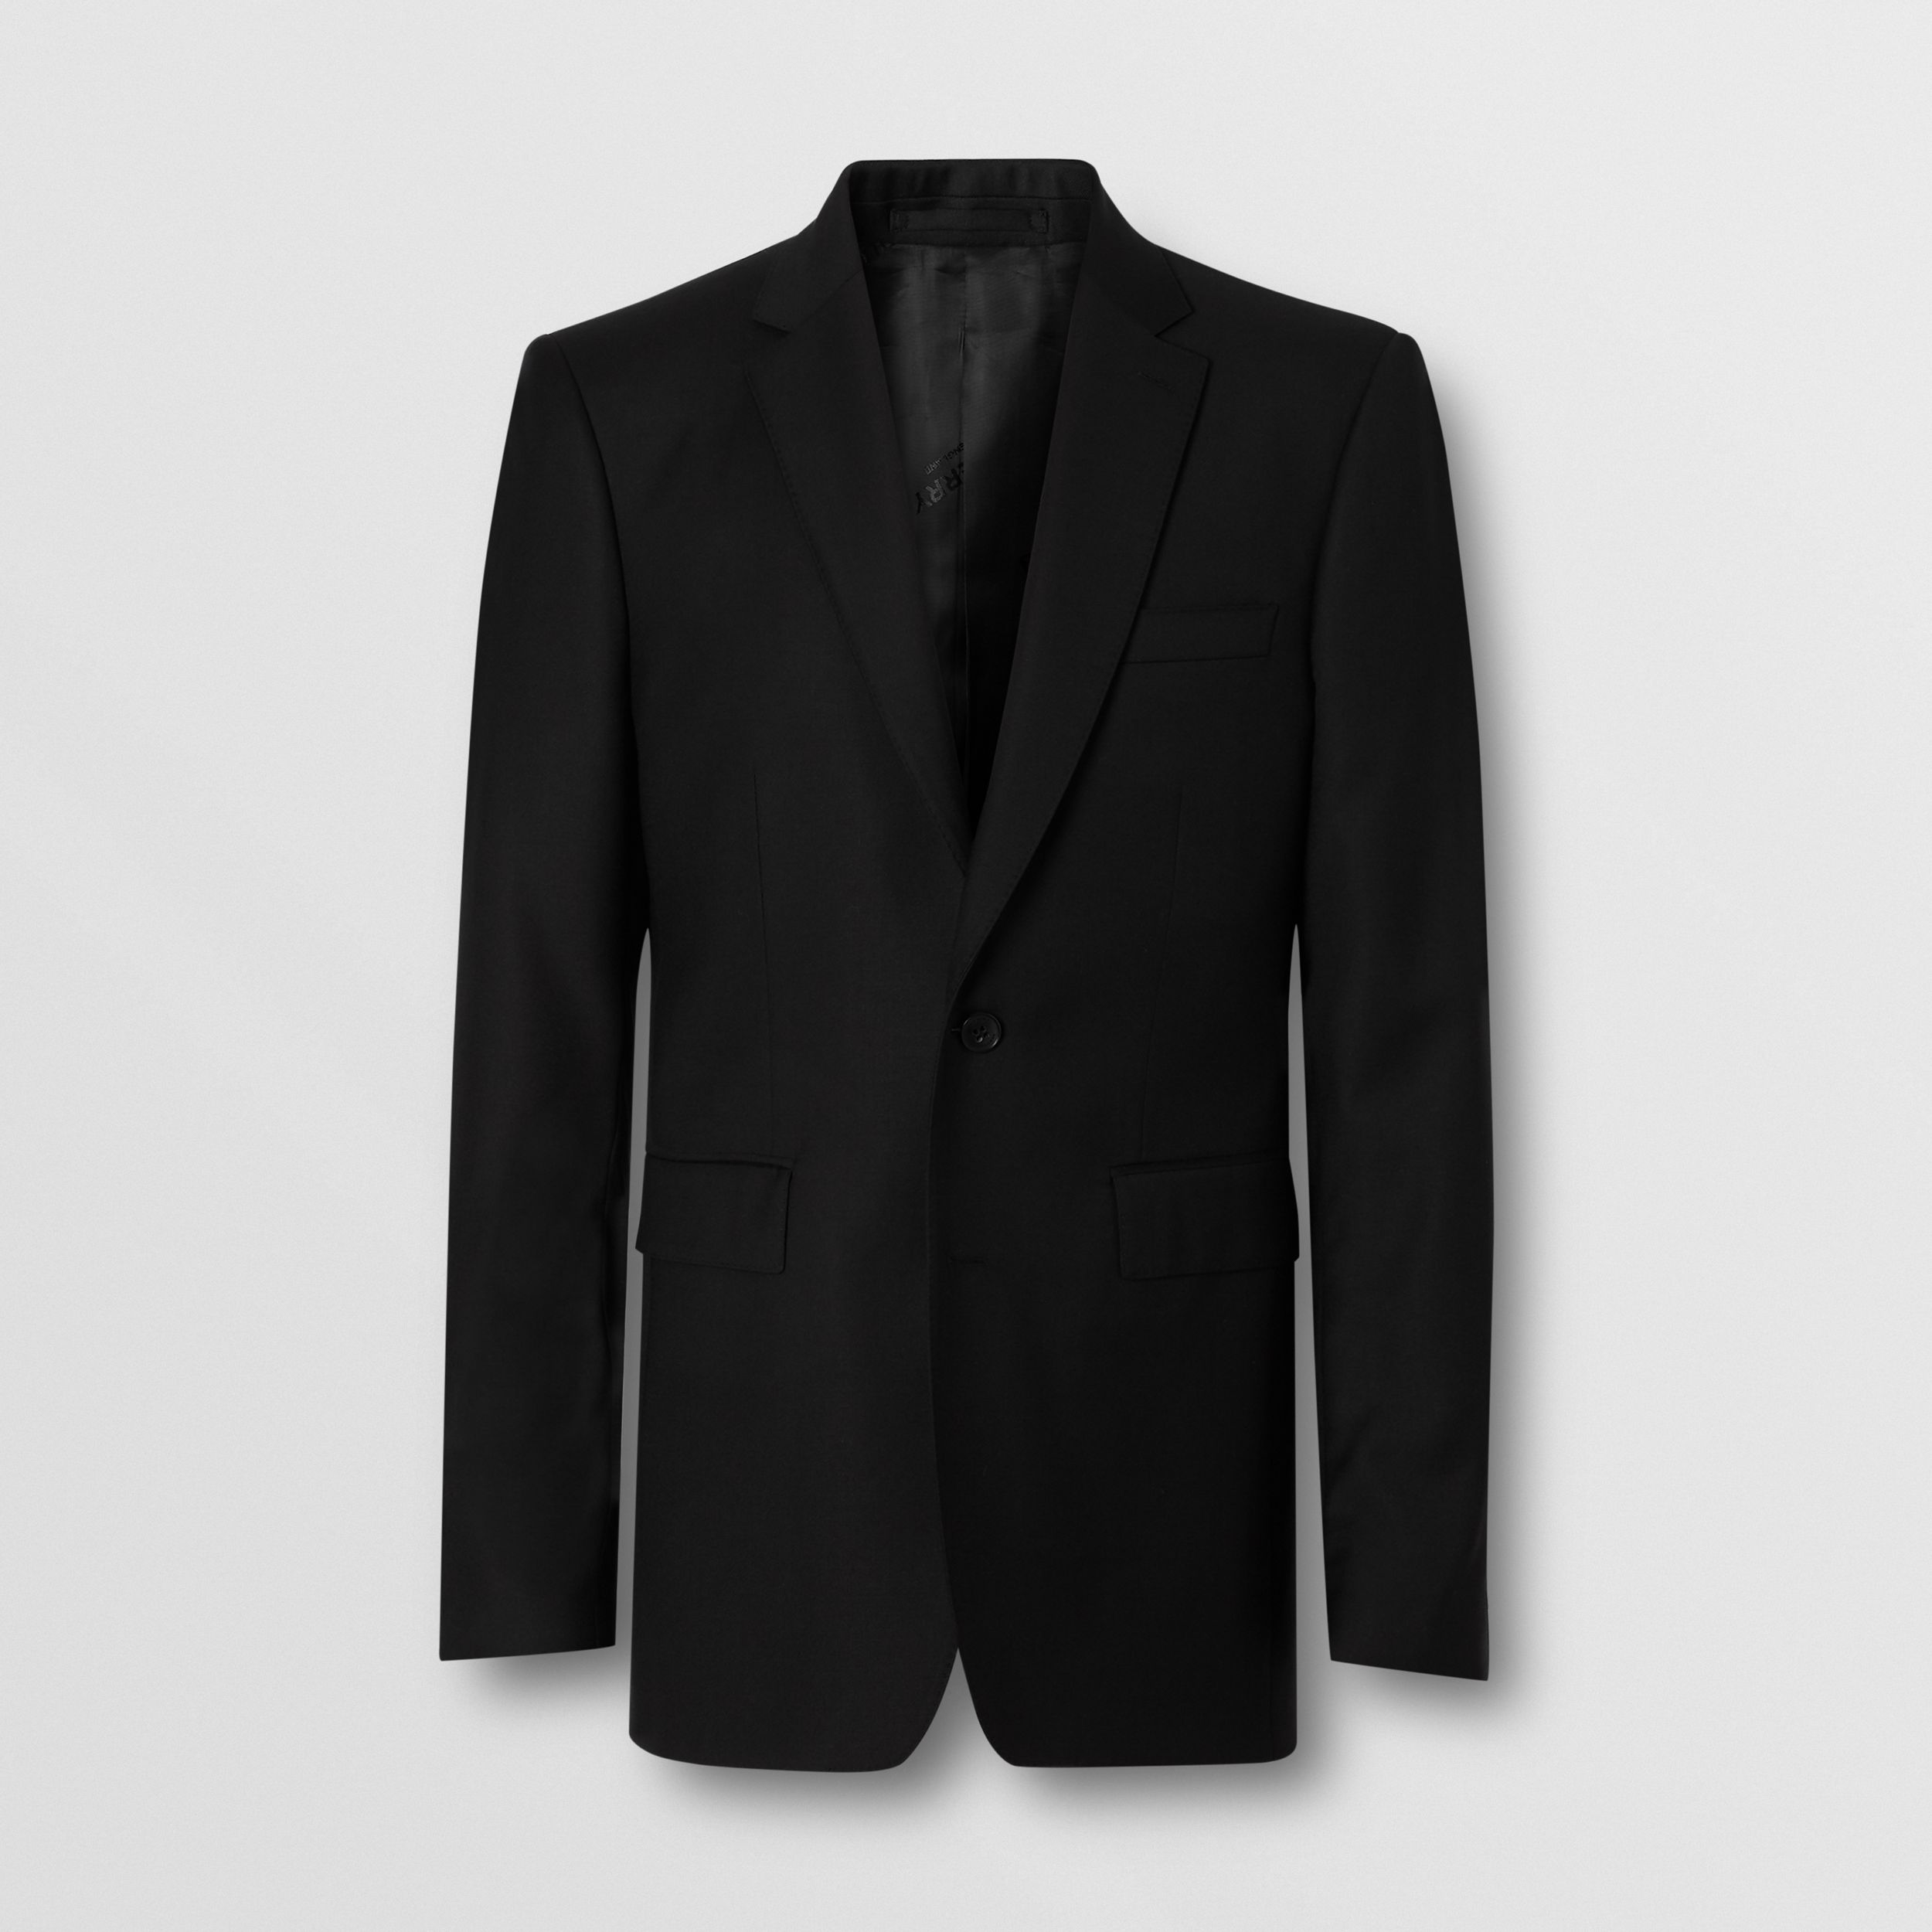 Classic Fit Wool Suit in Black - Men | Burberry United Kingdom - 4